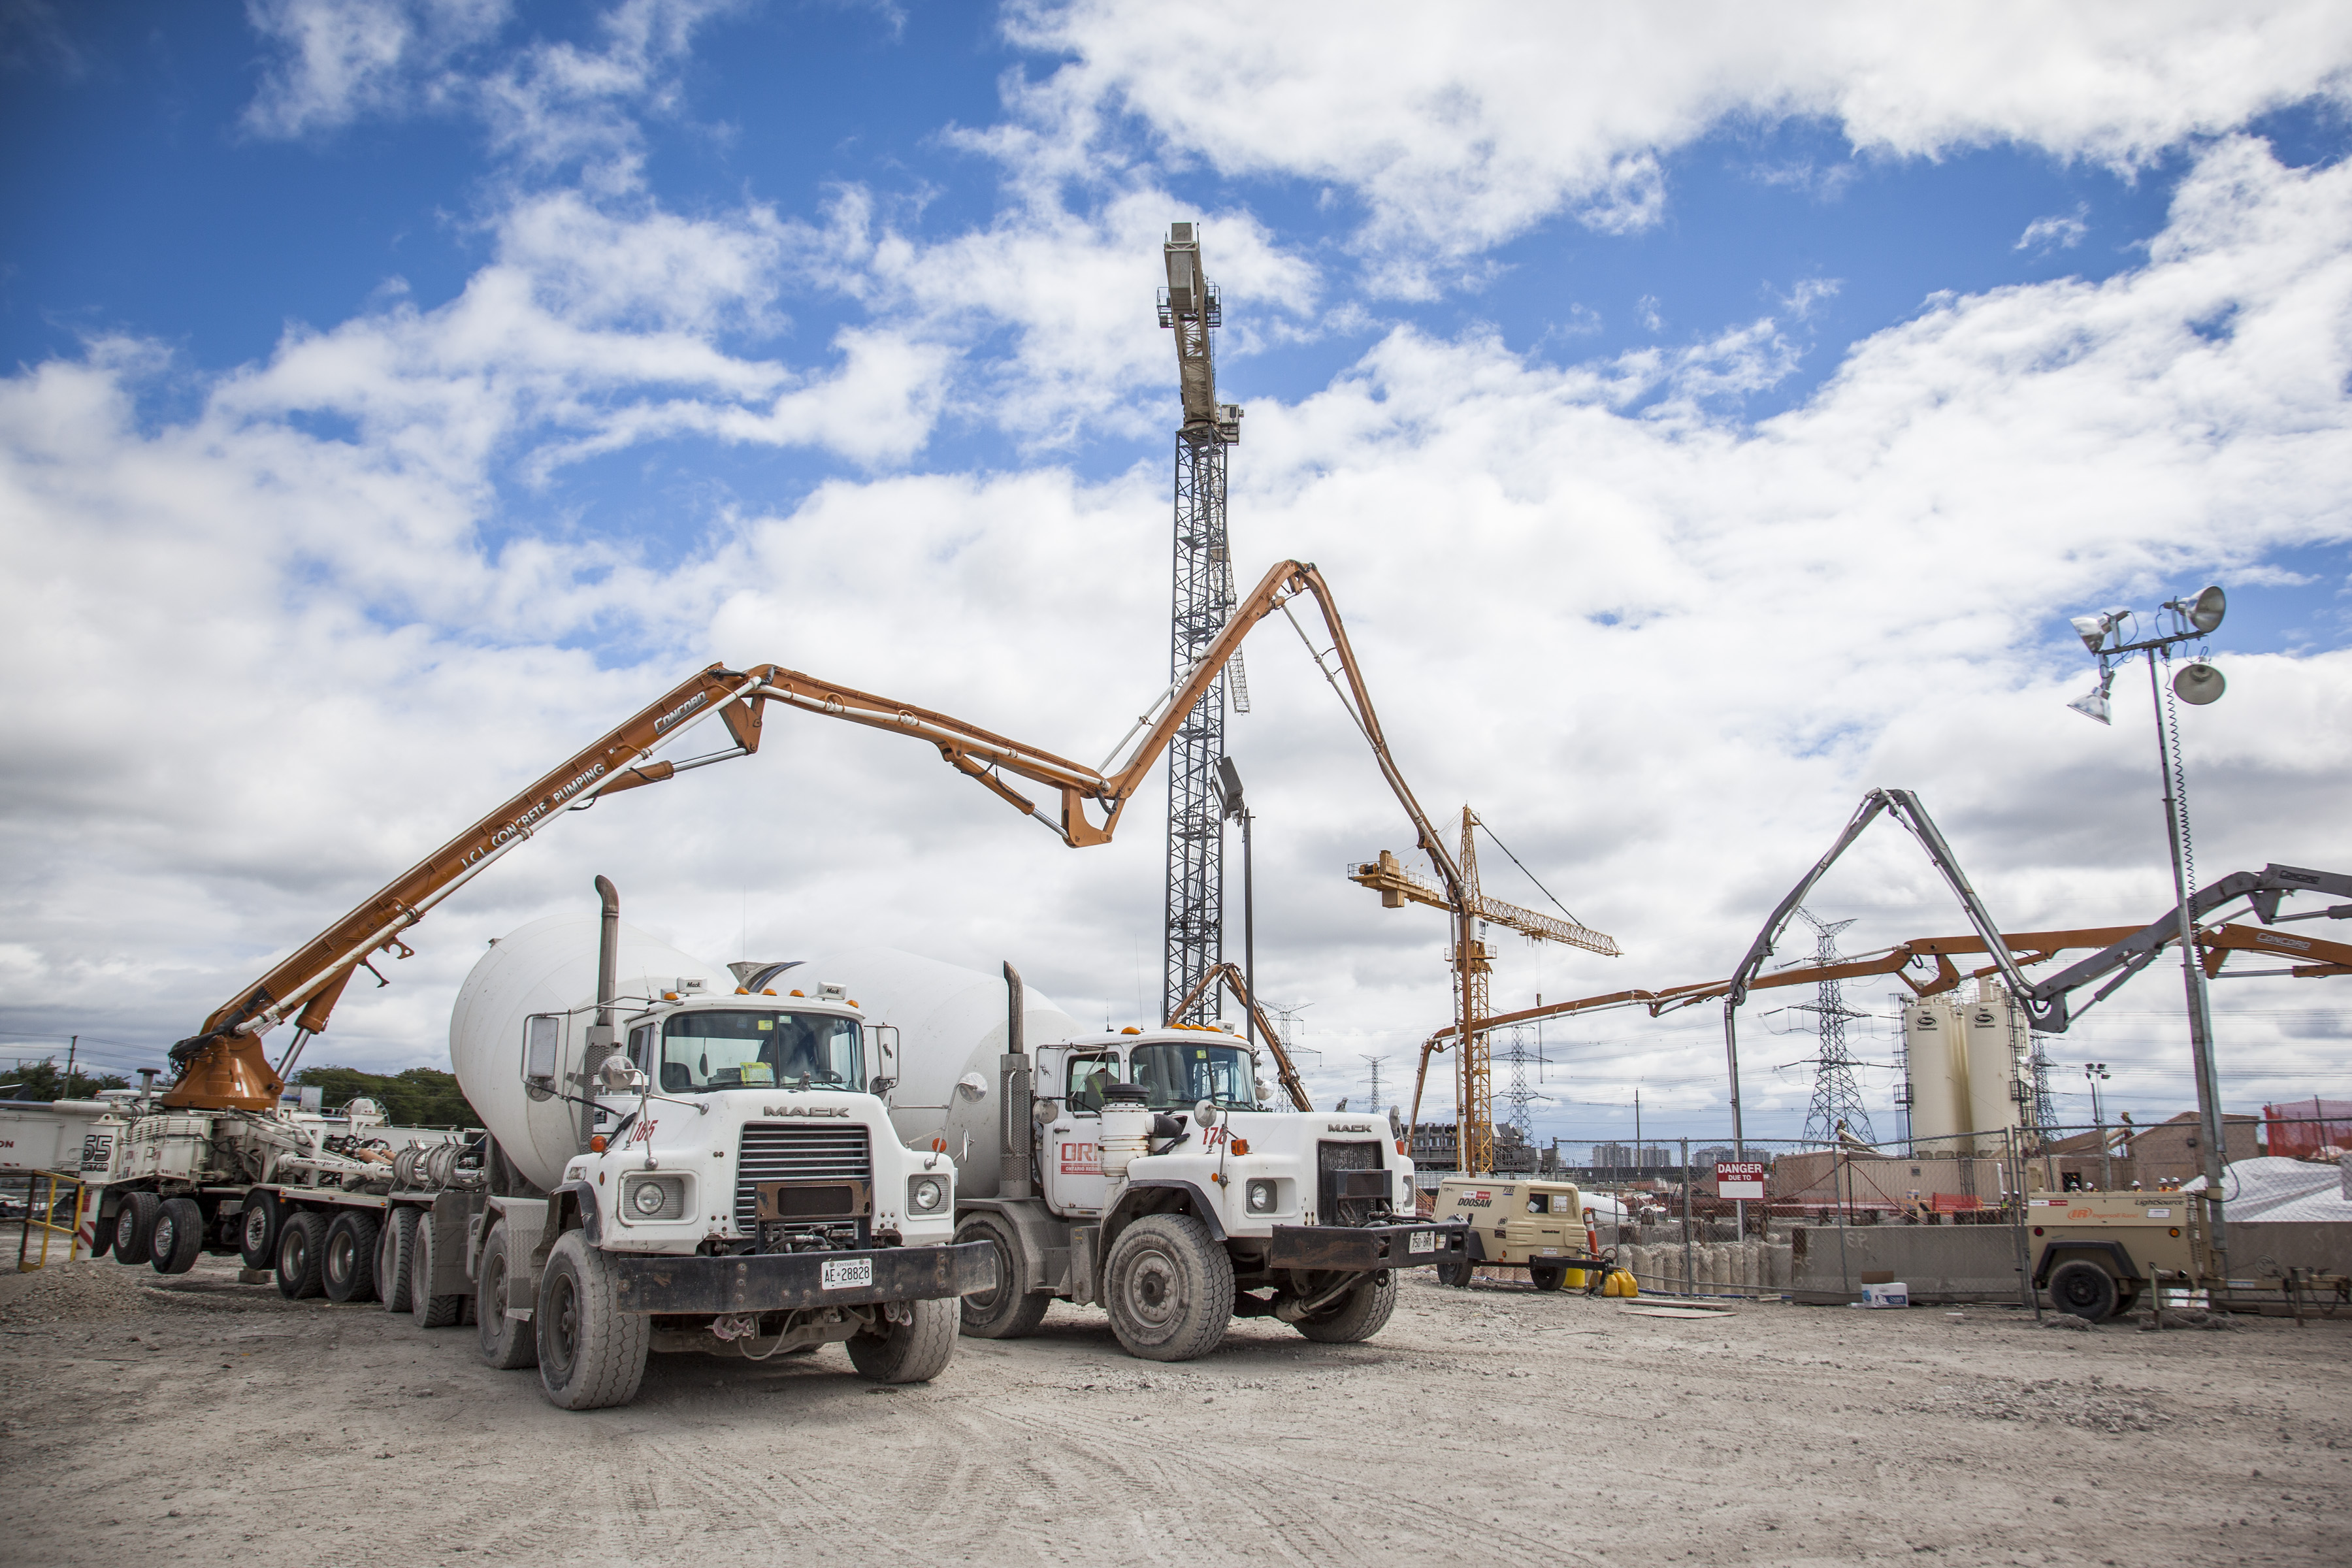 Trucks at a pour on a sunny day